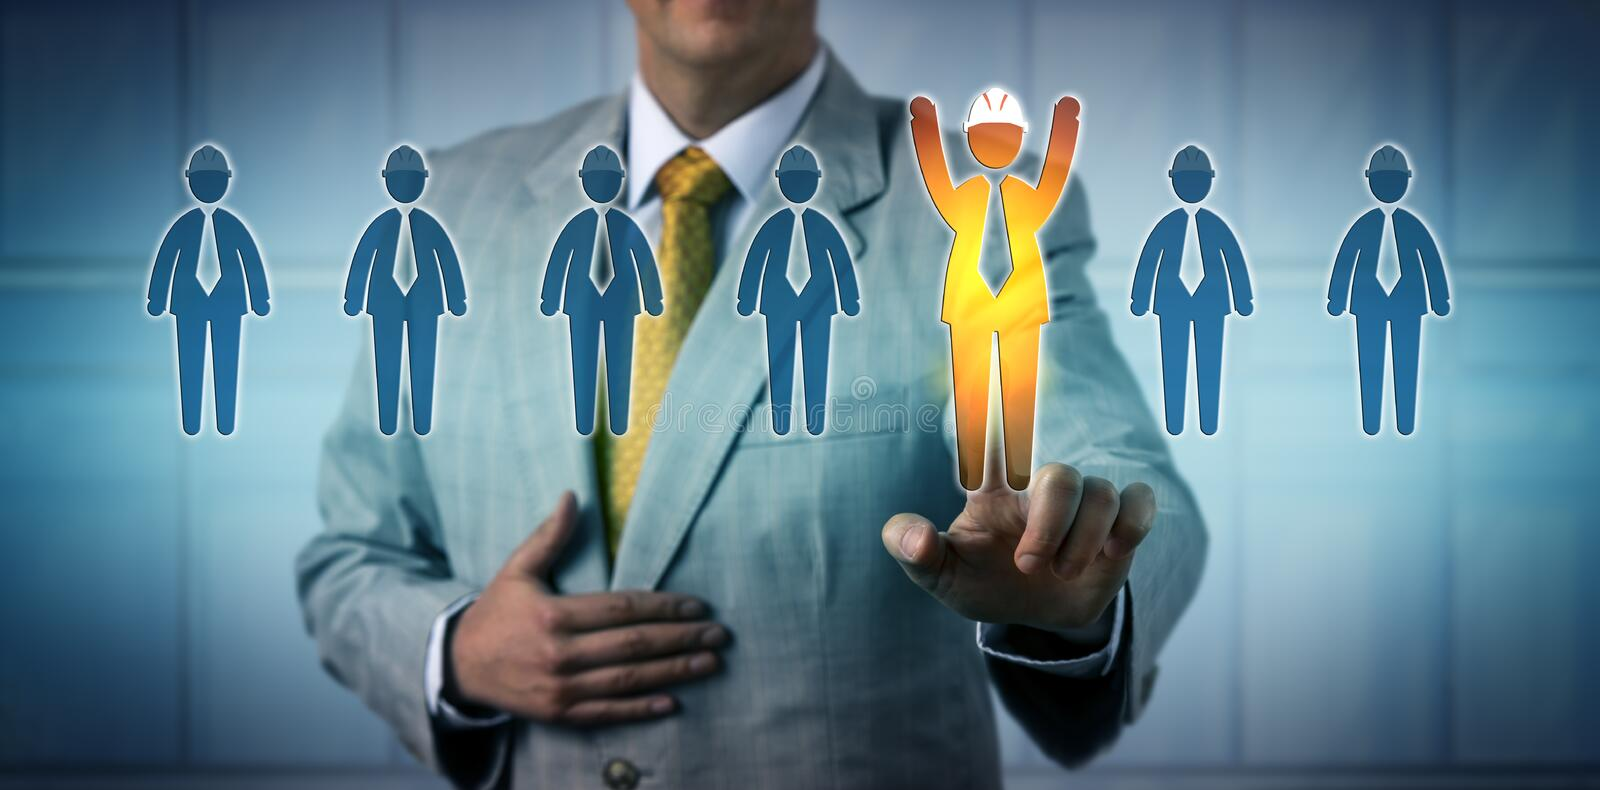 Recruiter Selecting A Cheering Blue Collar Worker. Unrecognizable recruiter selecting one cheering male blue collar worker among seven candidates. Recruiting royalty free stock photo